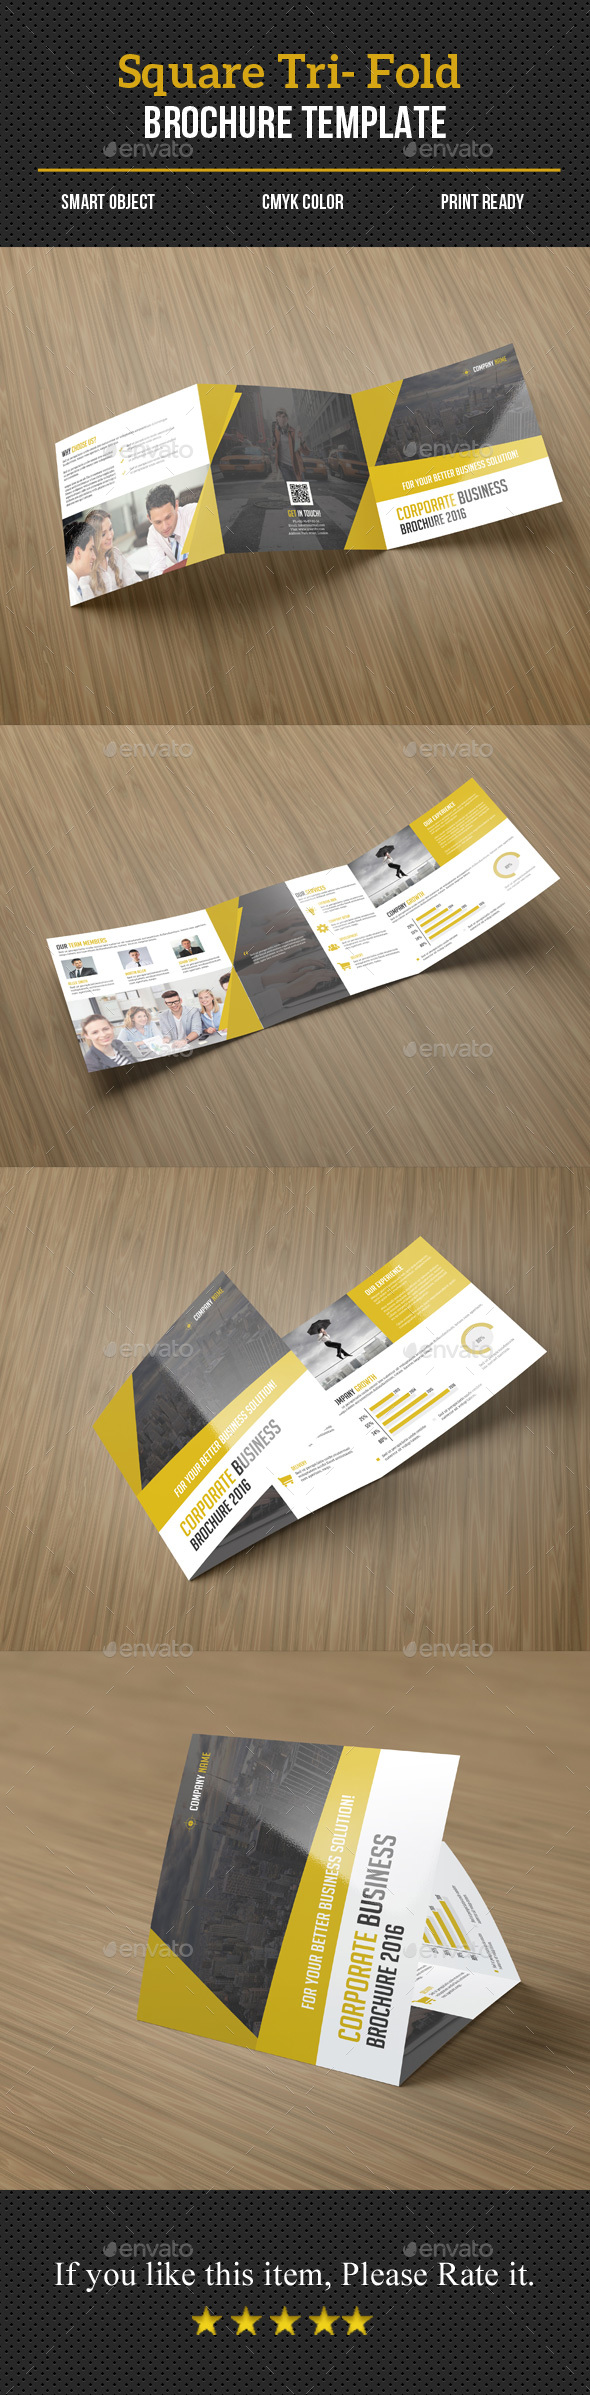 Square Tri-Fold Business Brochure - Corporate Brochures